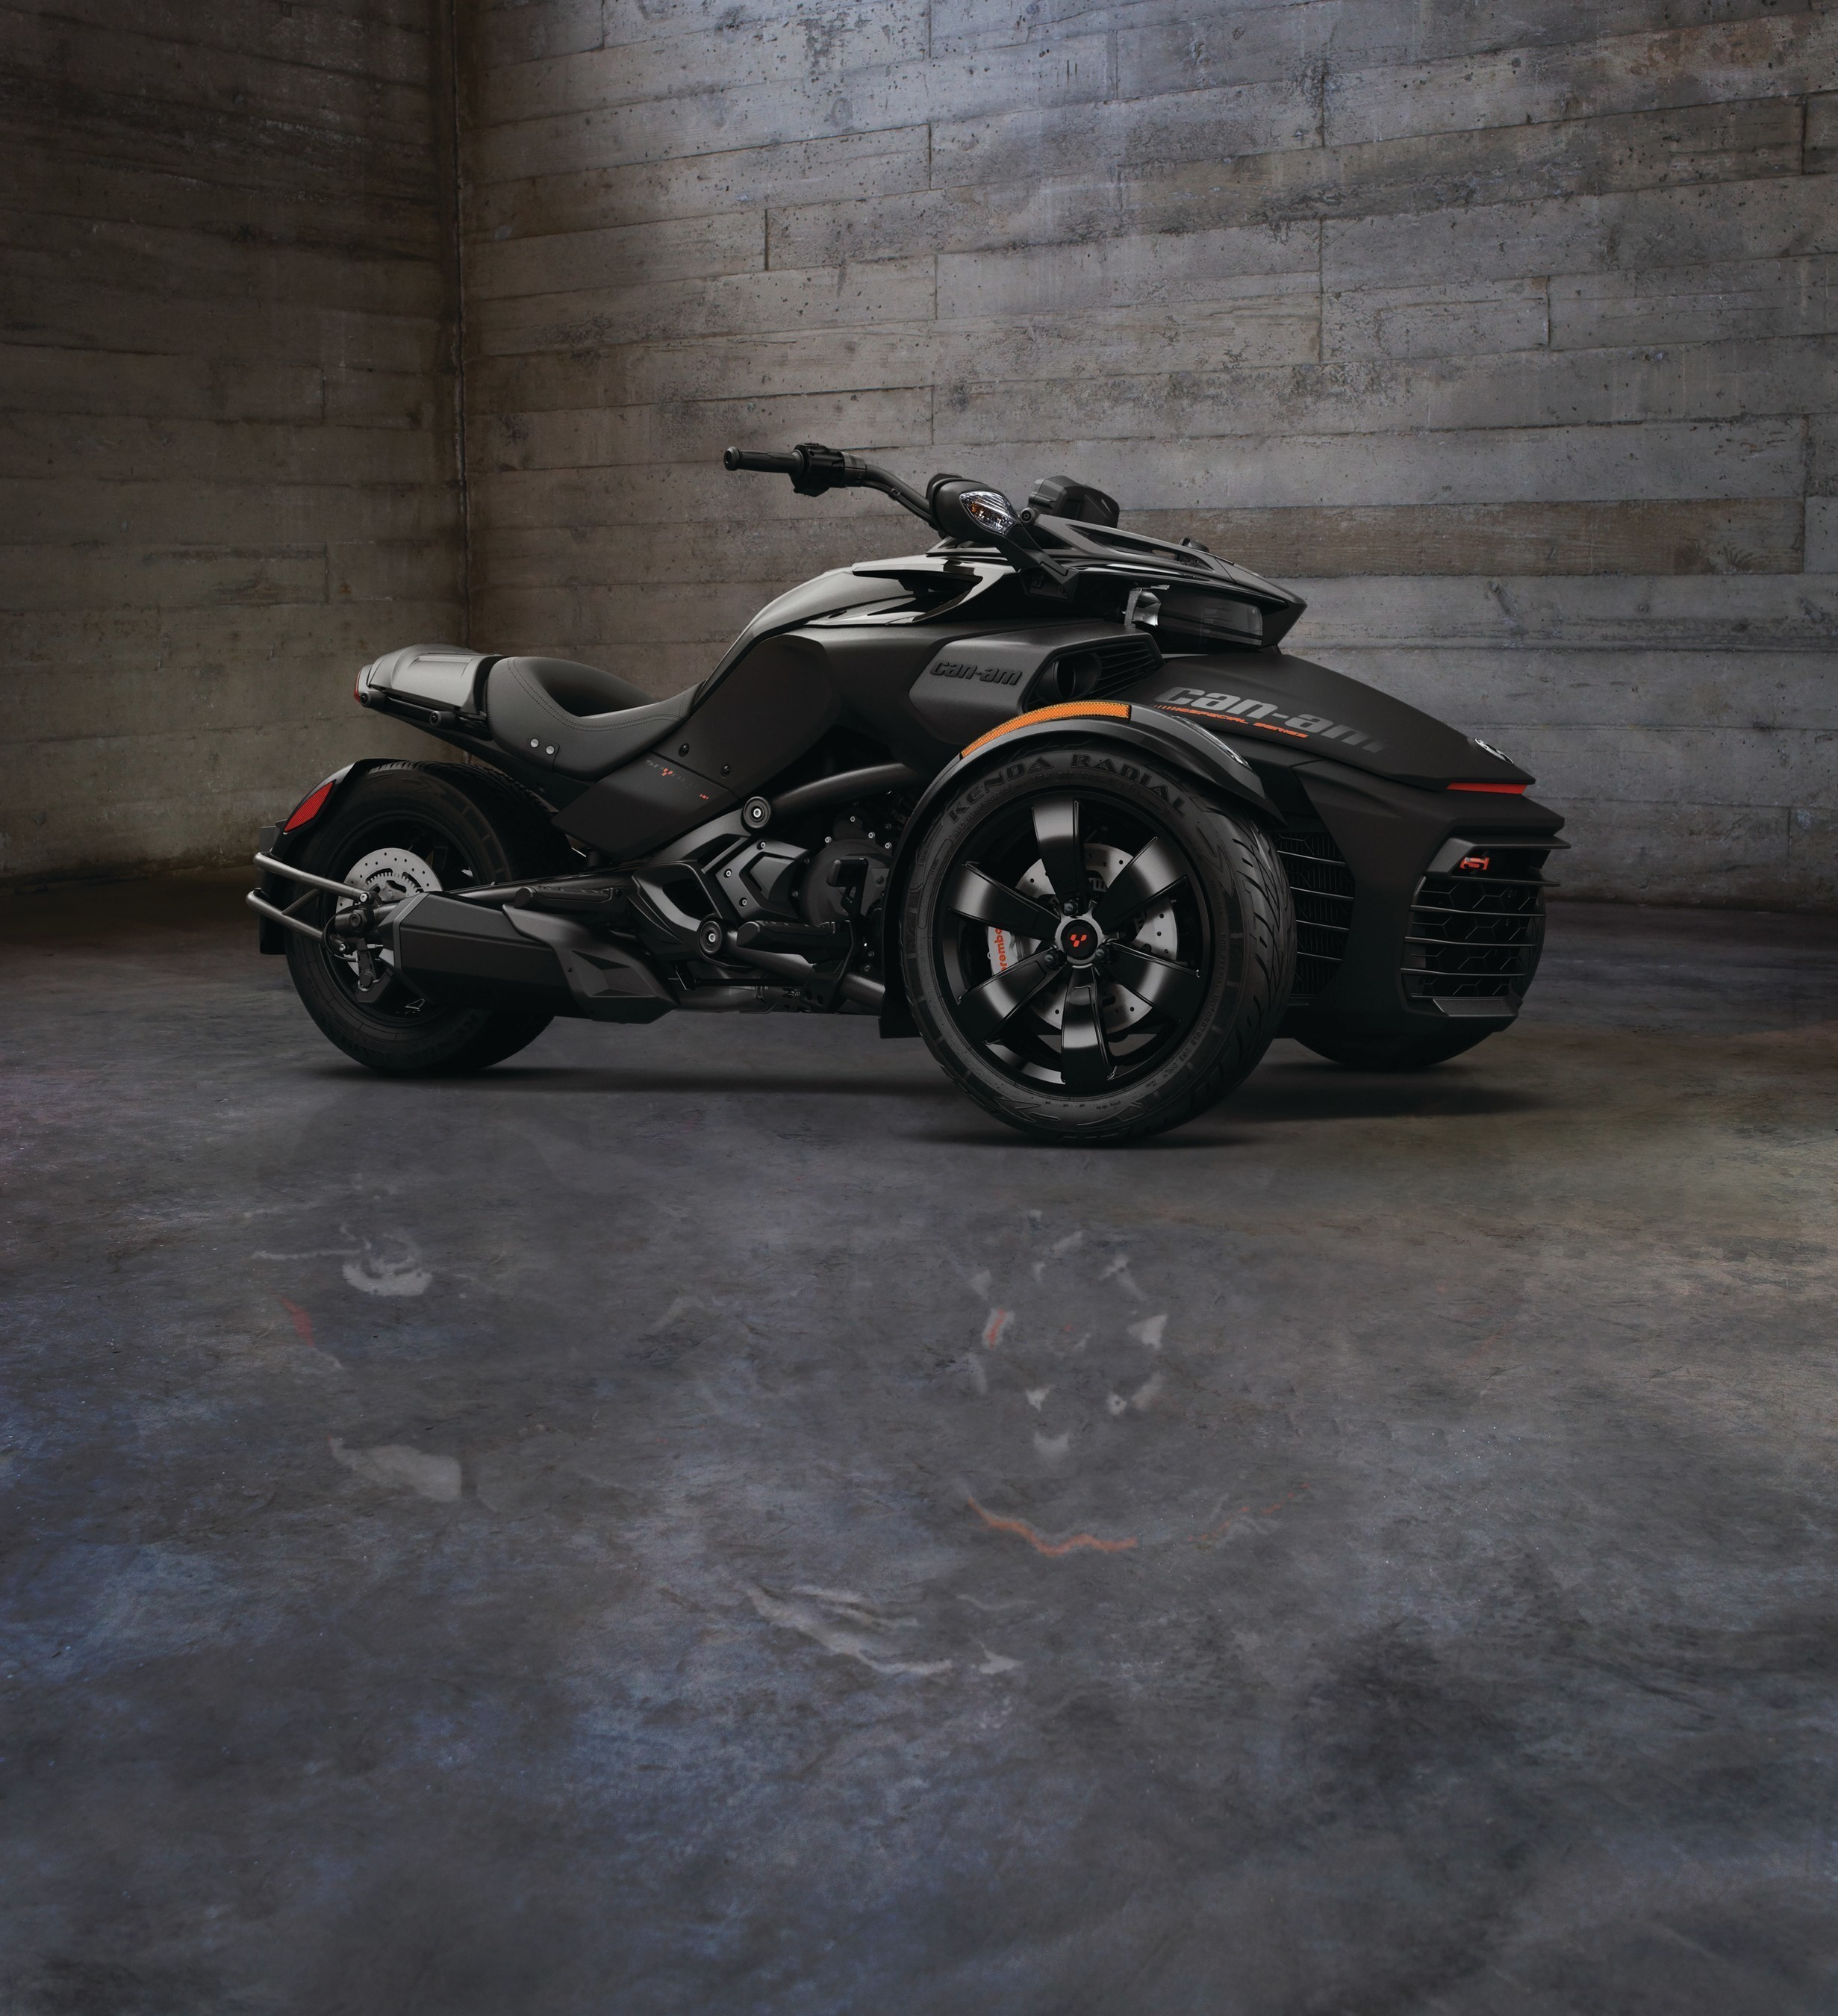 BRP Unveils 2016 Can-Am Spyder F3-S Special Series at Sturgis Motorcycle Rally